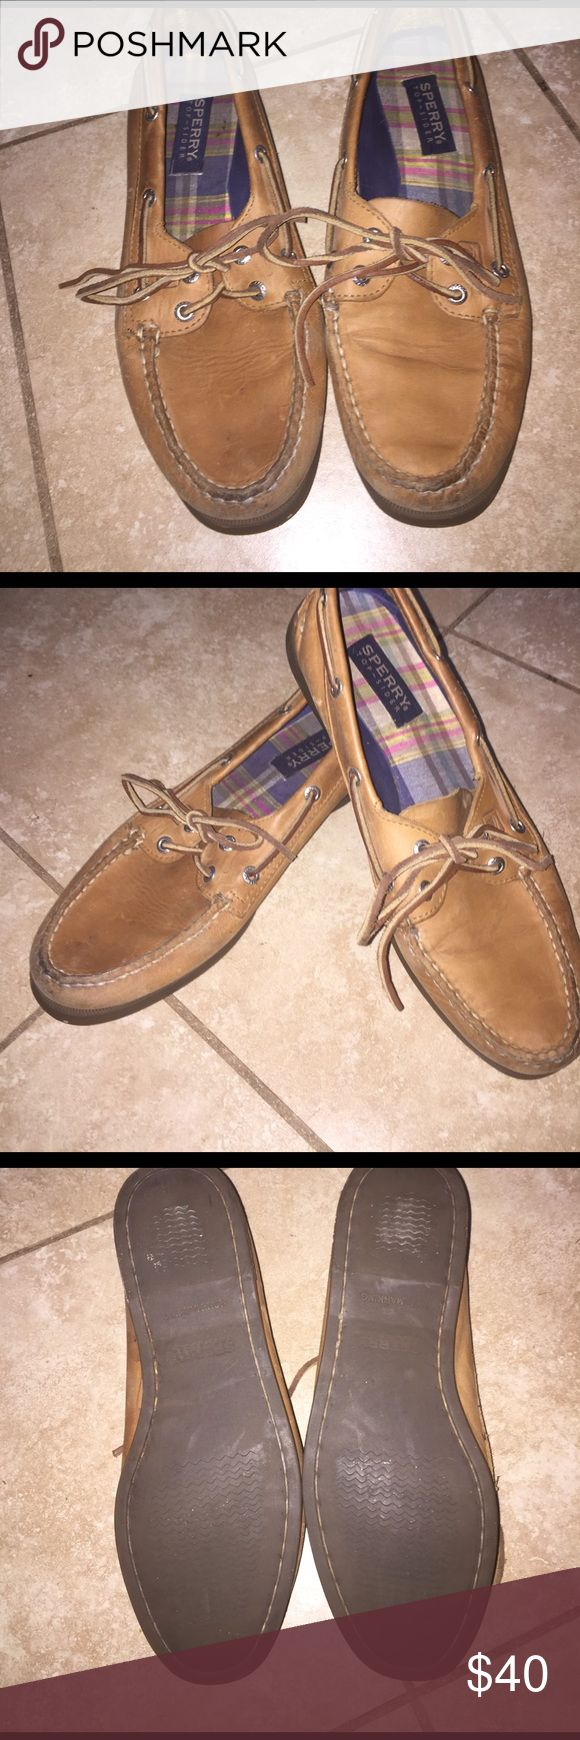 Selling this Chestnut sperry top sider boat shoes on Poshmark! My username is: kpriceisright02. #shopmycloset #poshmark #fashion #shopping #style #forsale #Sperry Top-Sider #Shoes